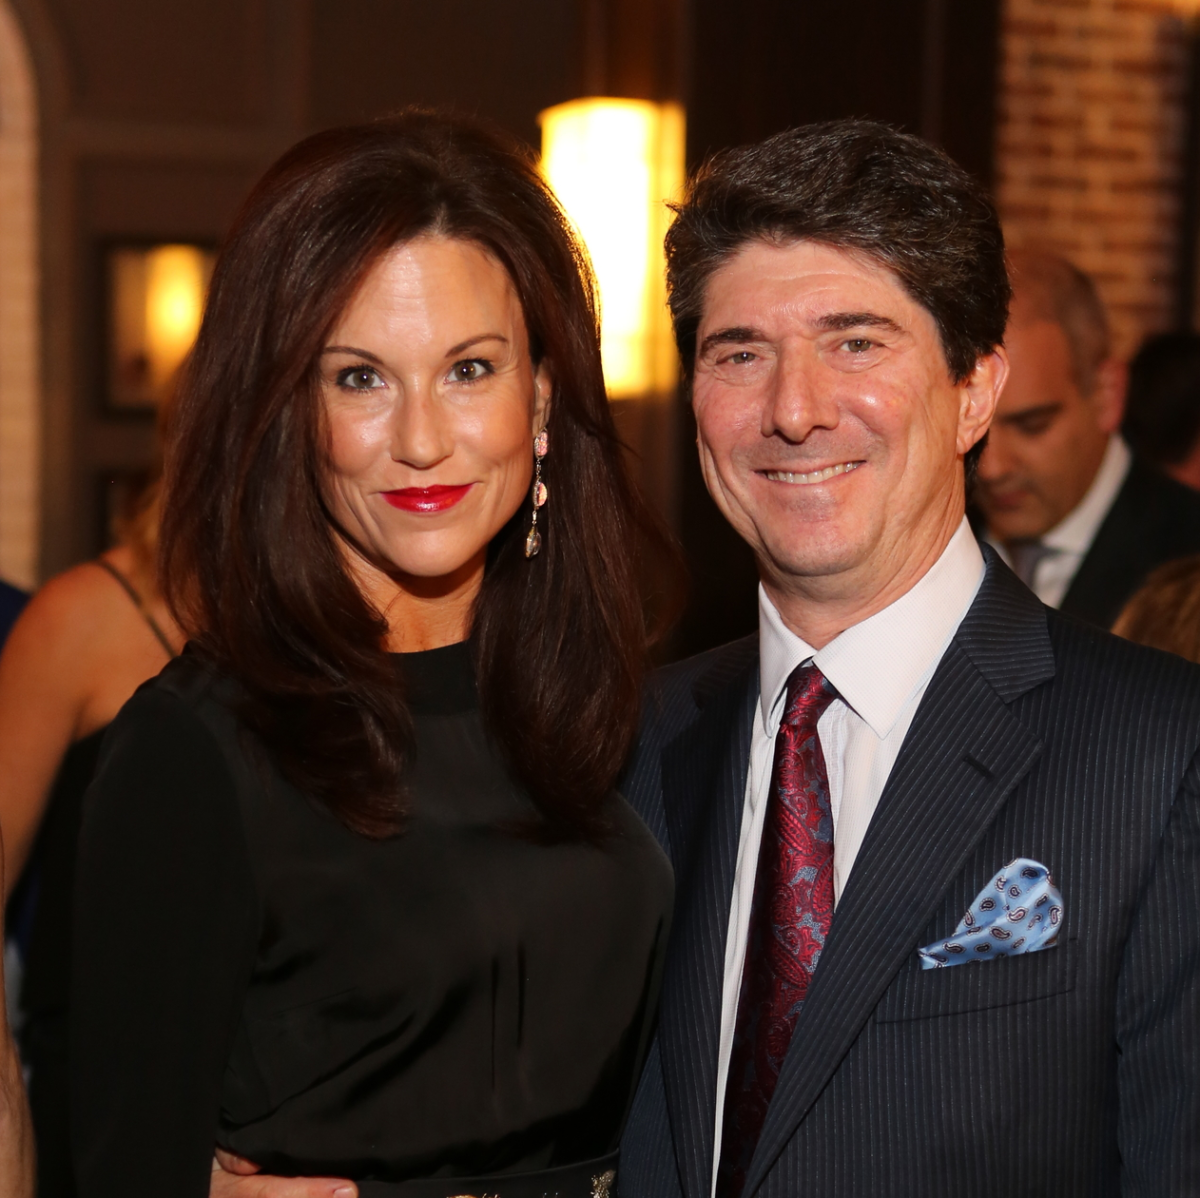 News, Shelby, Catwalk for a Cure, Nov. 2015, Norelle Becker, Brian Becker